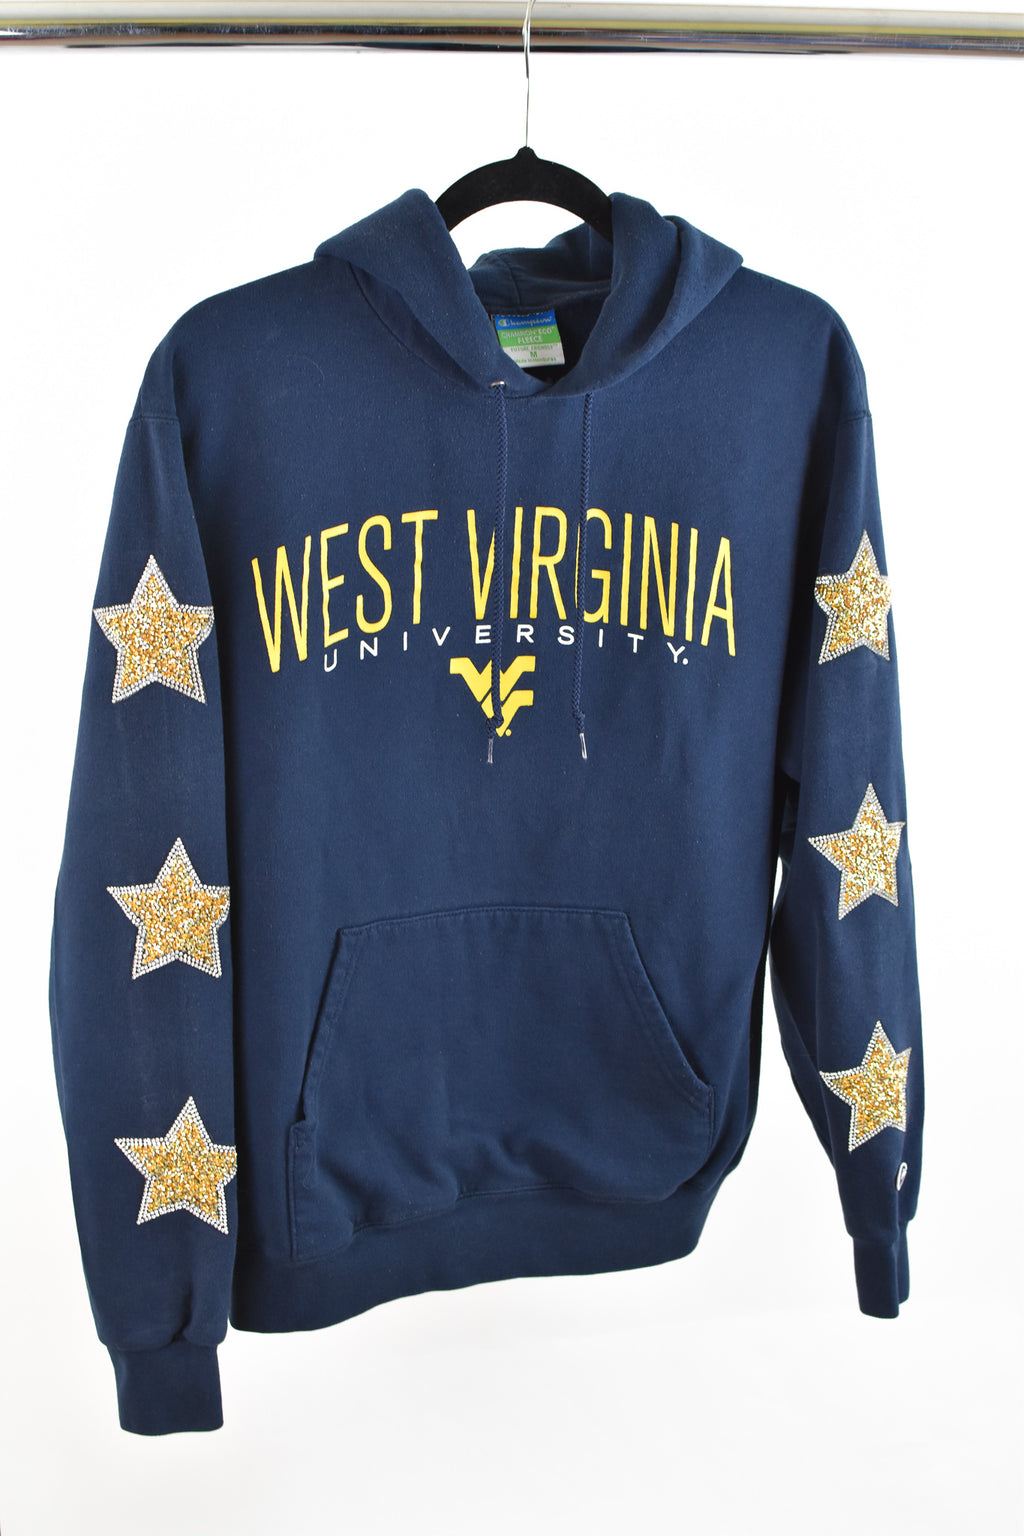 Upcycled West Virginia University Star Rhinestone Sweatshirt